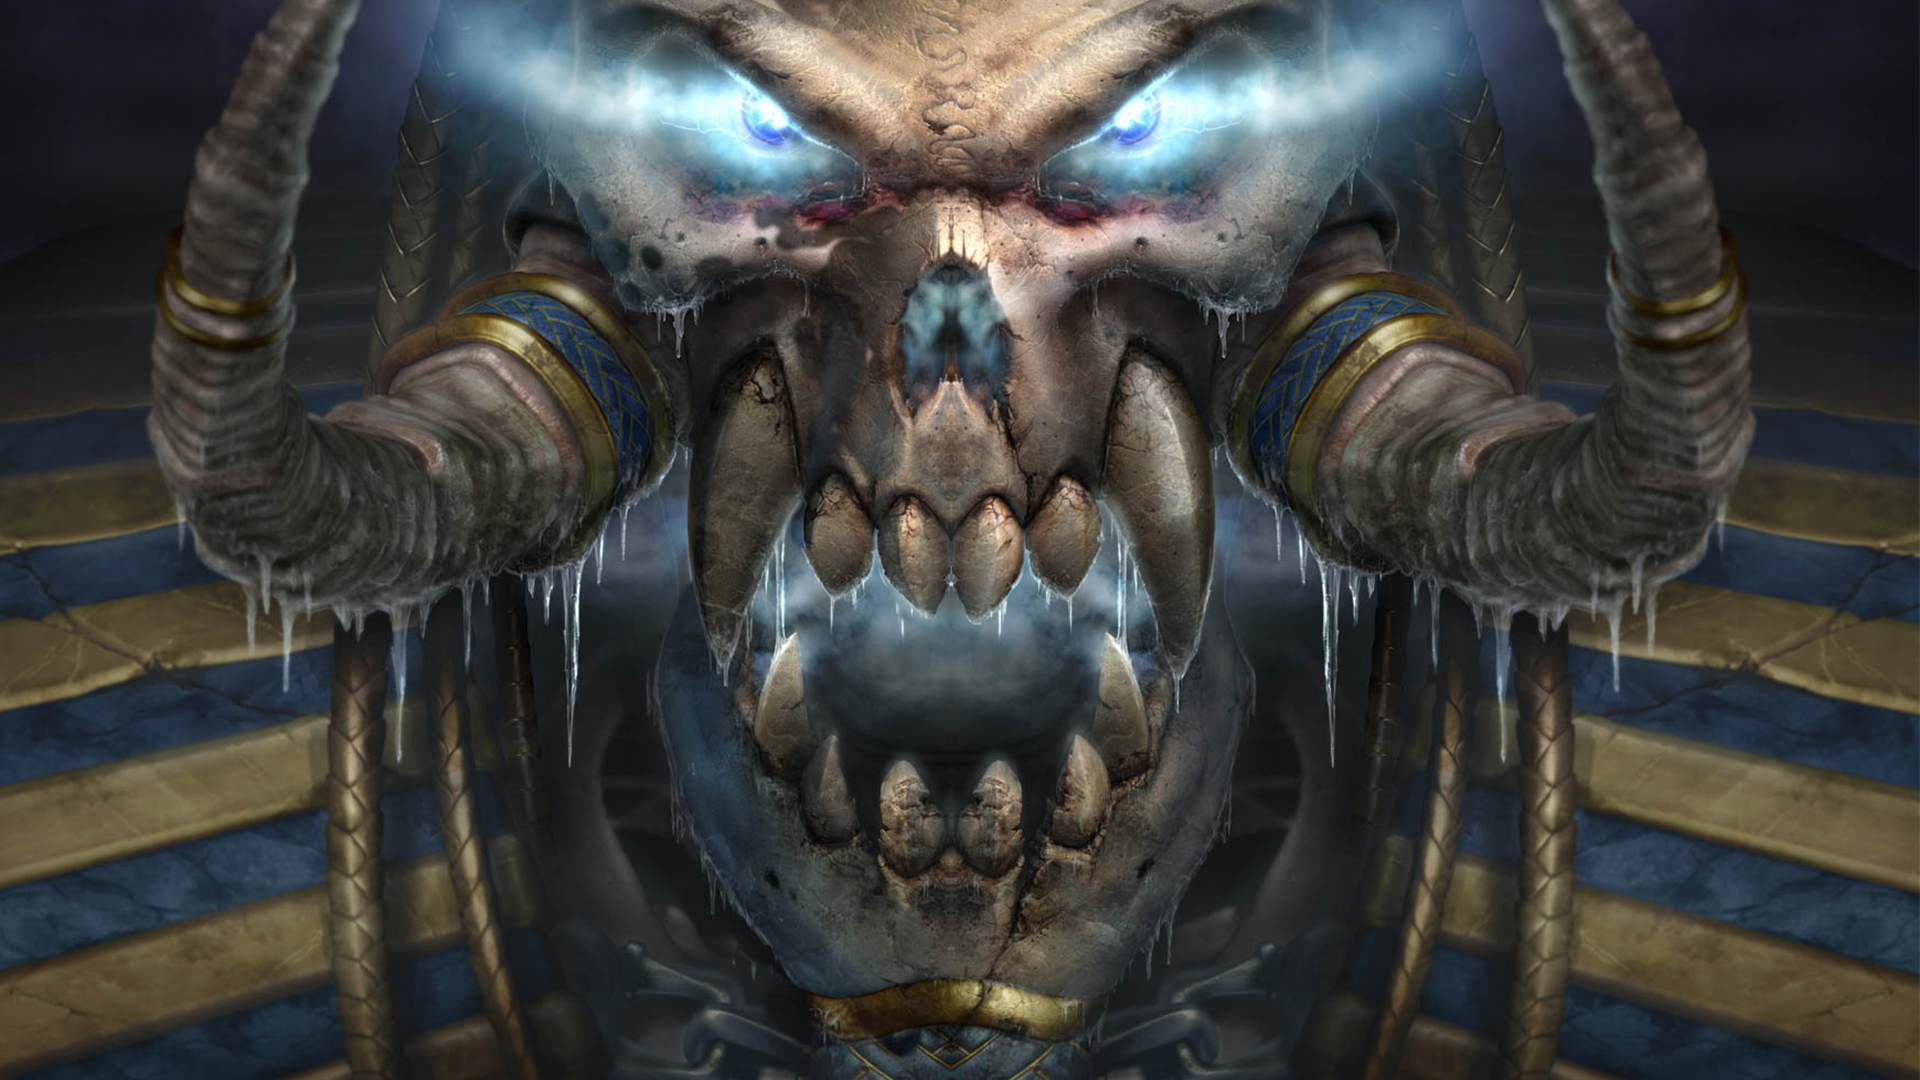 World of warcraft po rn adult thumbs